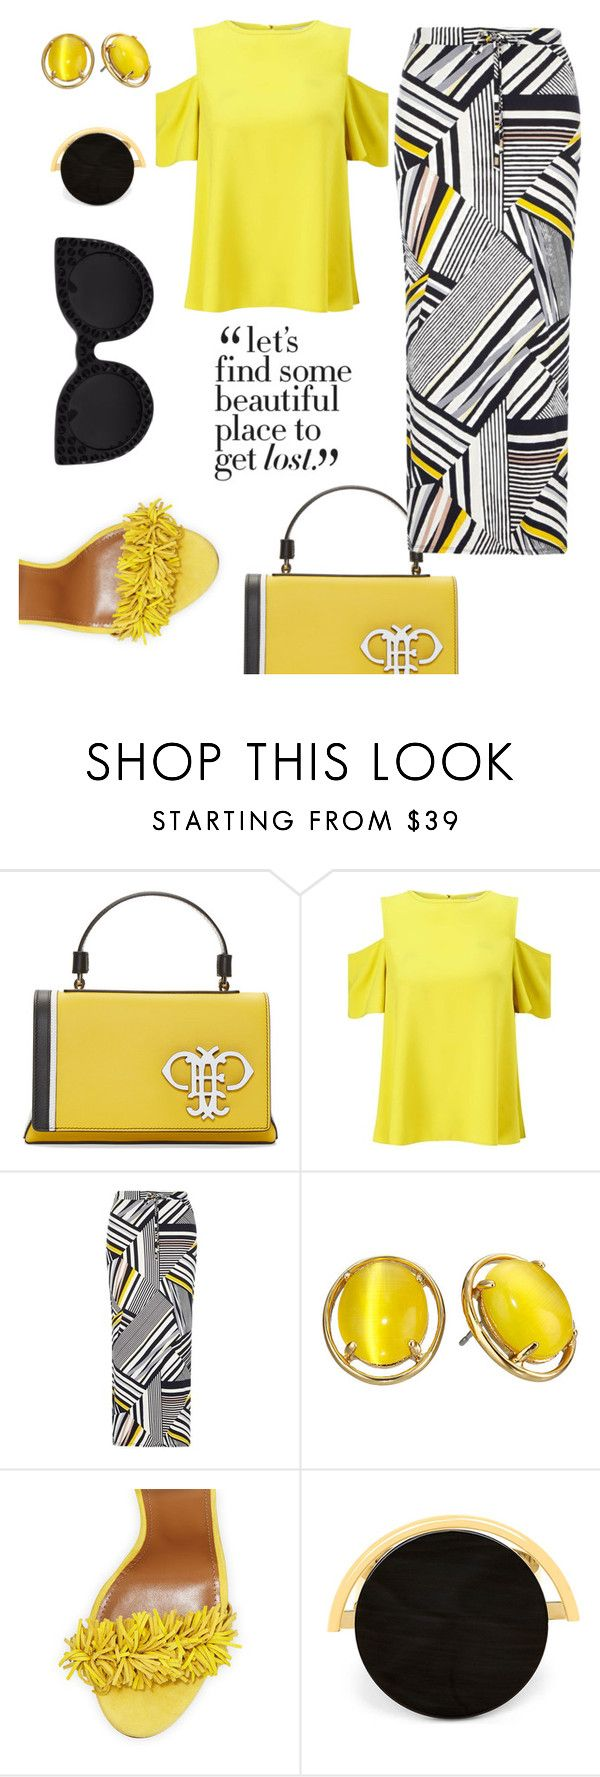 """""""Loving Clothes!"""" by gatocat ❤ liked on Polyvore featuring Emilio Pucci, Miss Selfridge, Dorothy Perkins, Kate Spade, Aquazzura and Marni"""